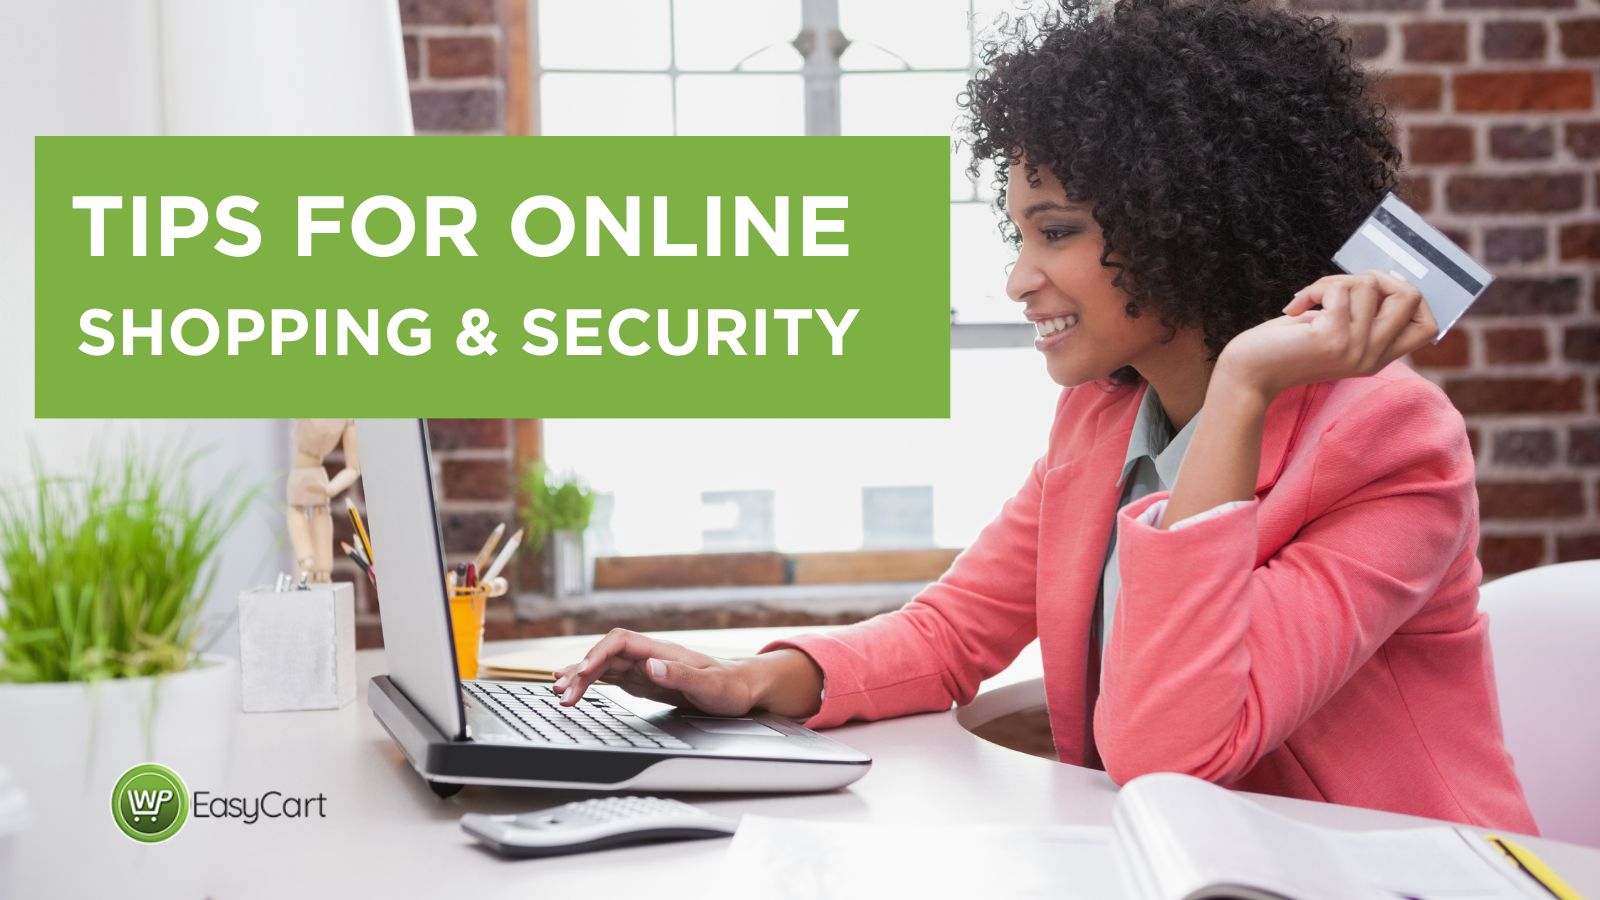 Tips for online shopping and security; woman with credit card in front of laptop.